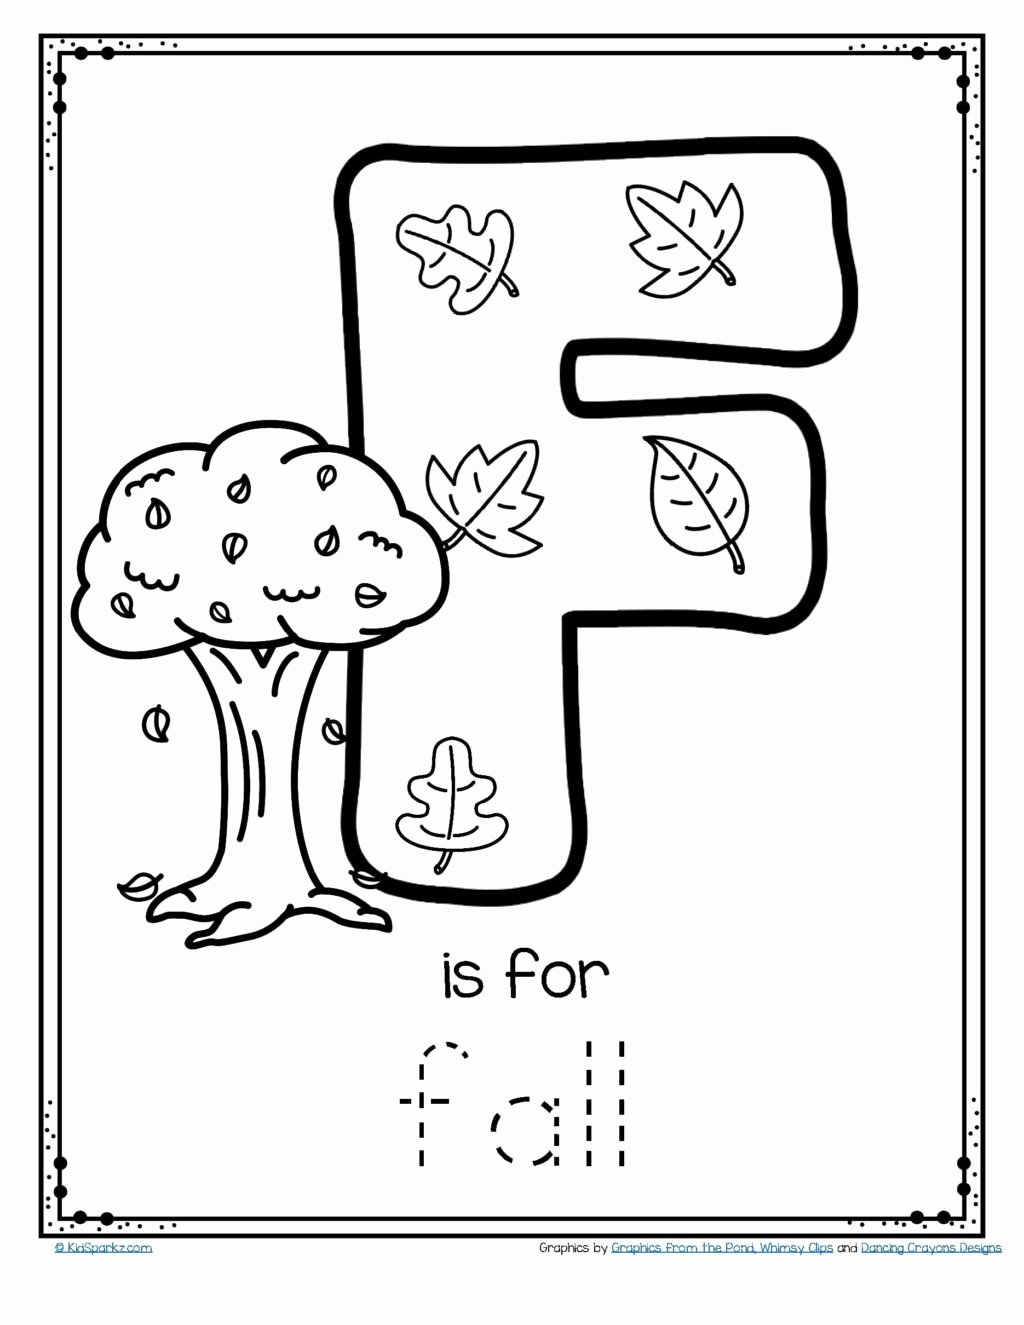 Measurement Worksheets for Preschoolers Lovely Worksheet Fabulous Math Work for 2nd Grade Measurement